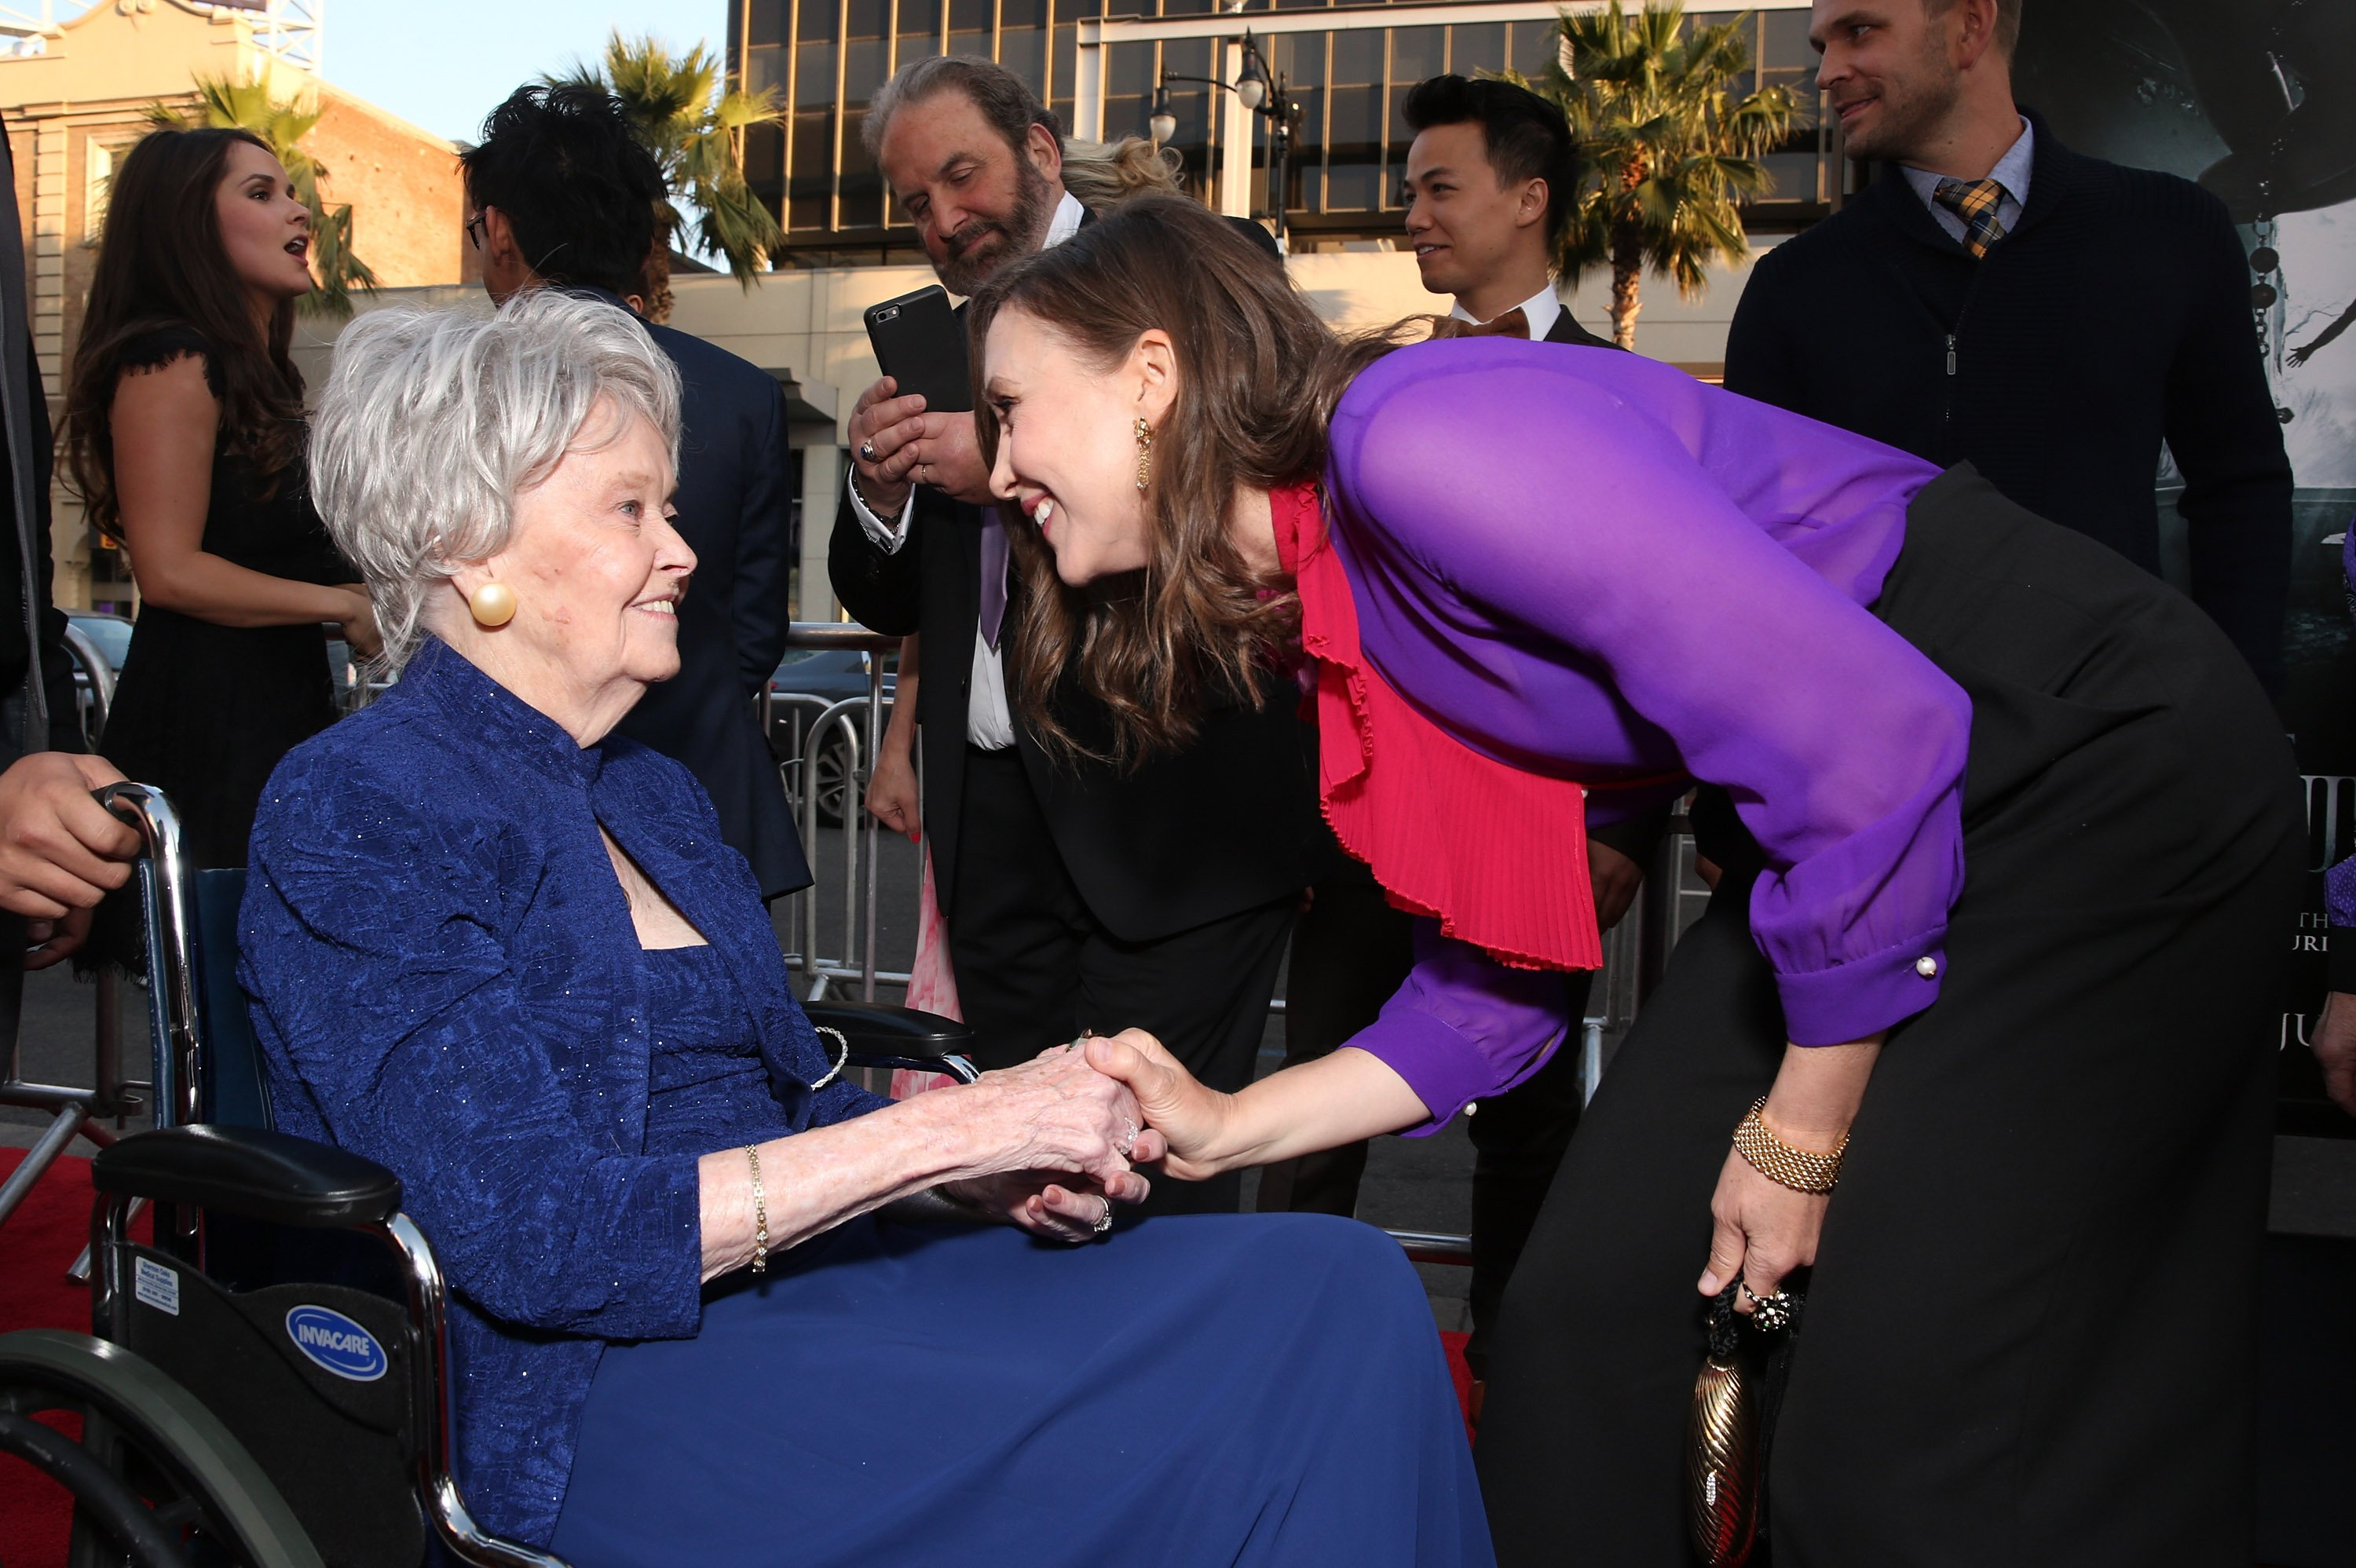 """Lorraine Warren and Vera Farmiga at the premiere of """"The Conjuring 2"""" in 2016 